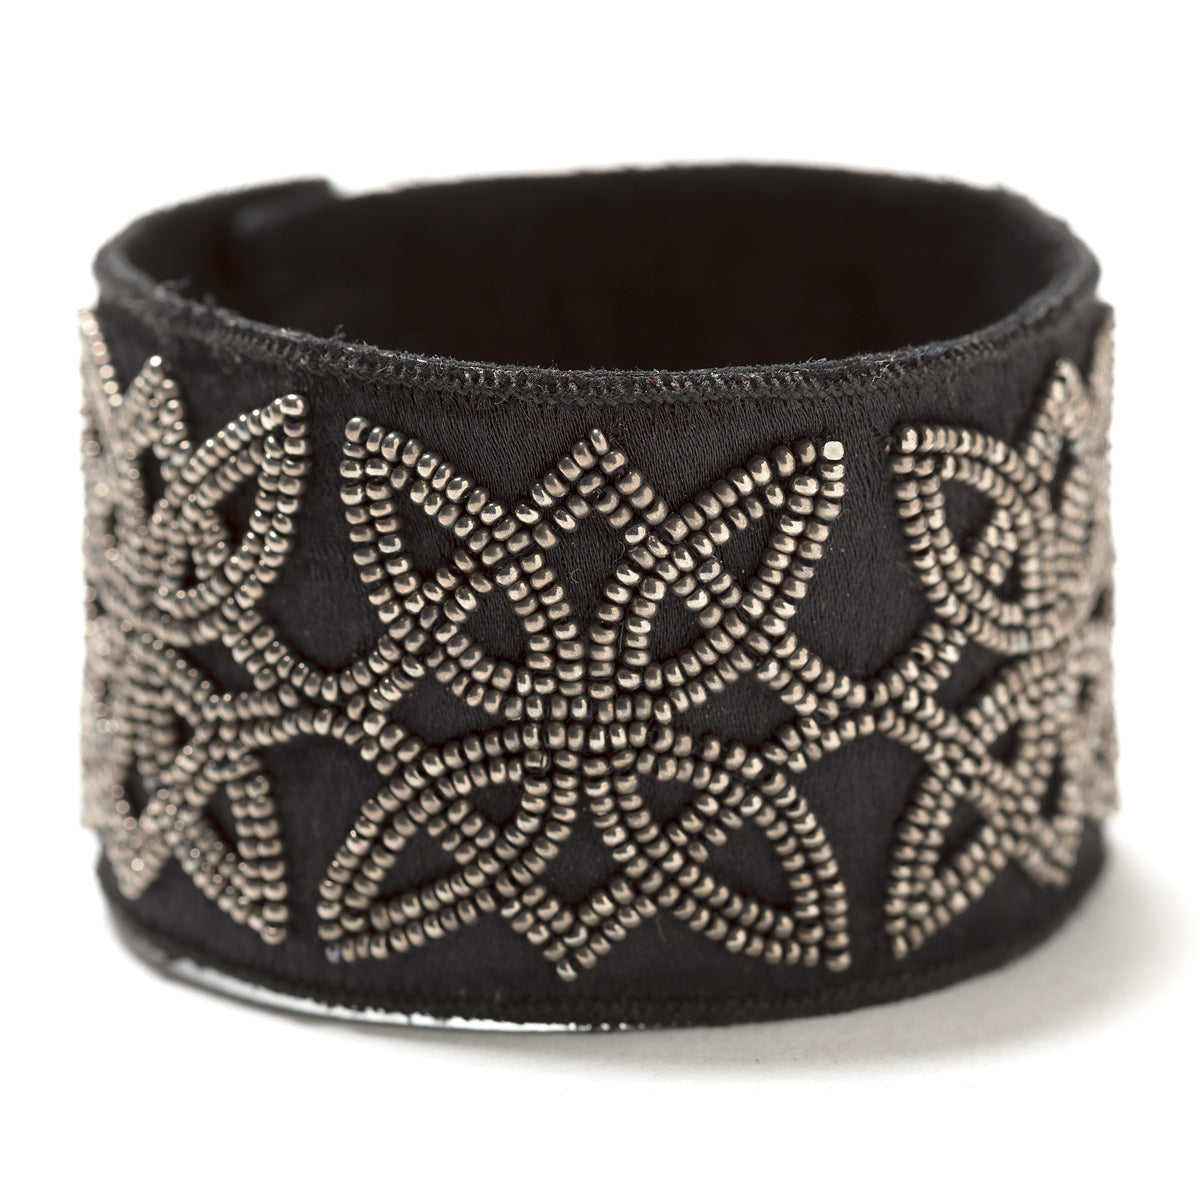 Lori Weitzner Ariadne Bracelet in Charcoal with Beading, Suede, Magnetic Closures